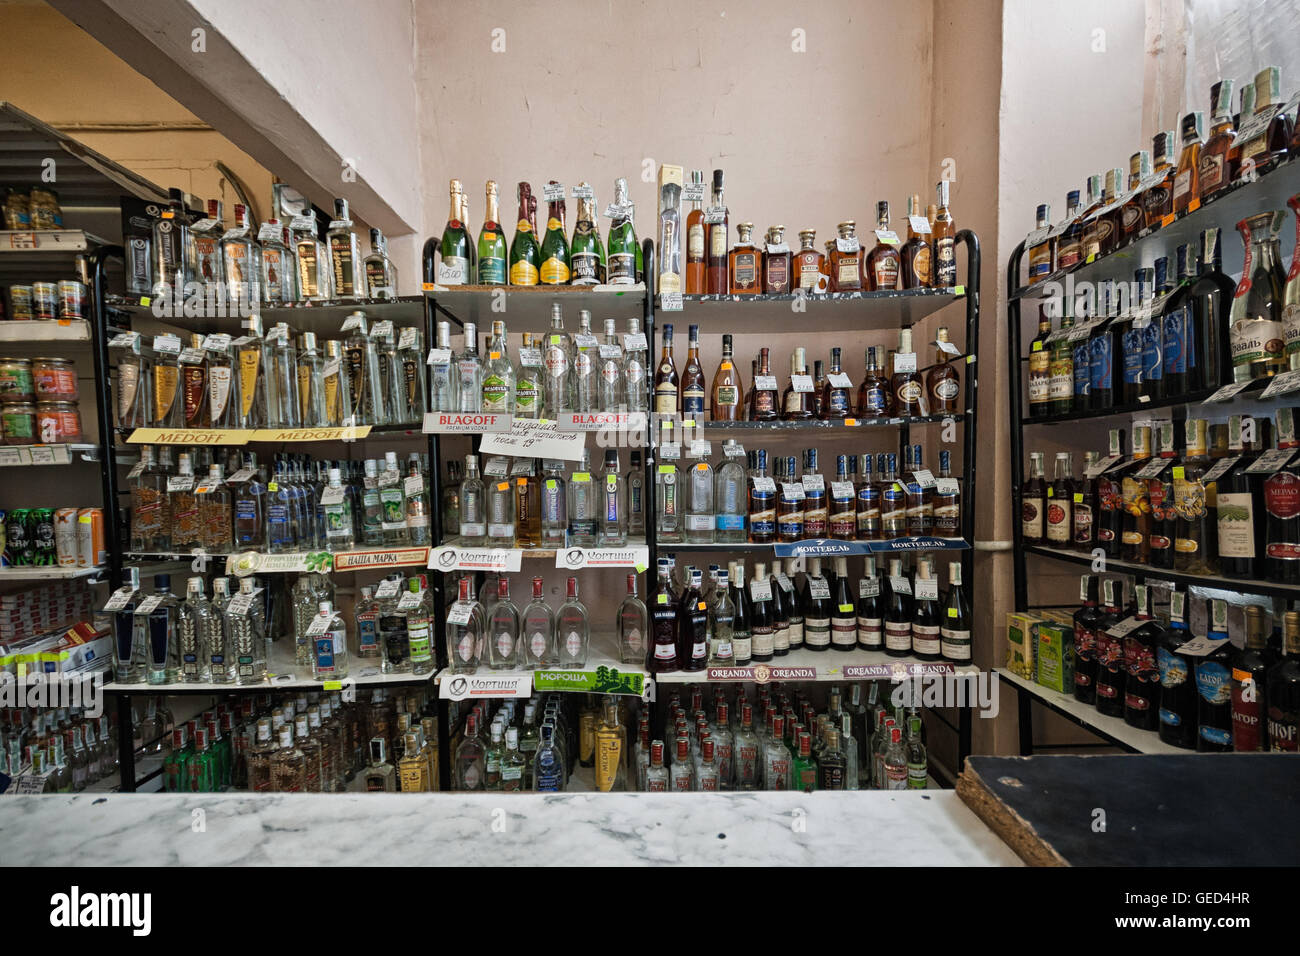 Alcohol for sale at one of the Chernobyl shops inside the exclusion zone, Ukraine. - Stock Image